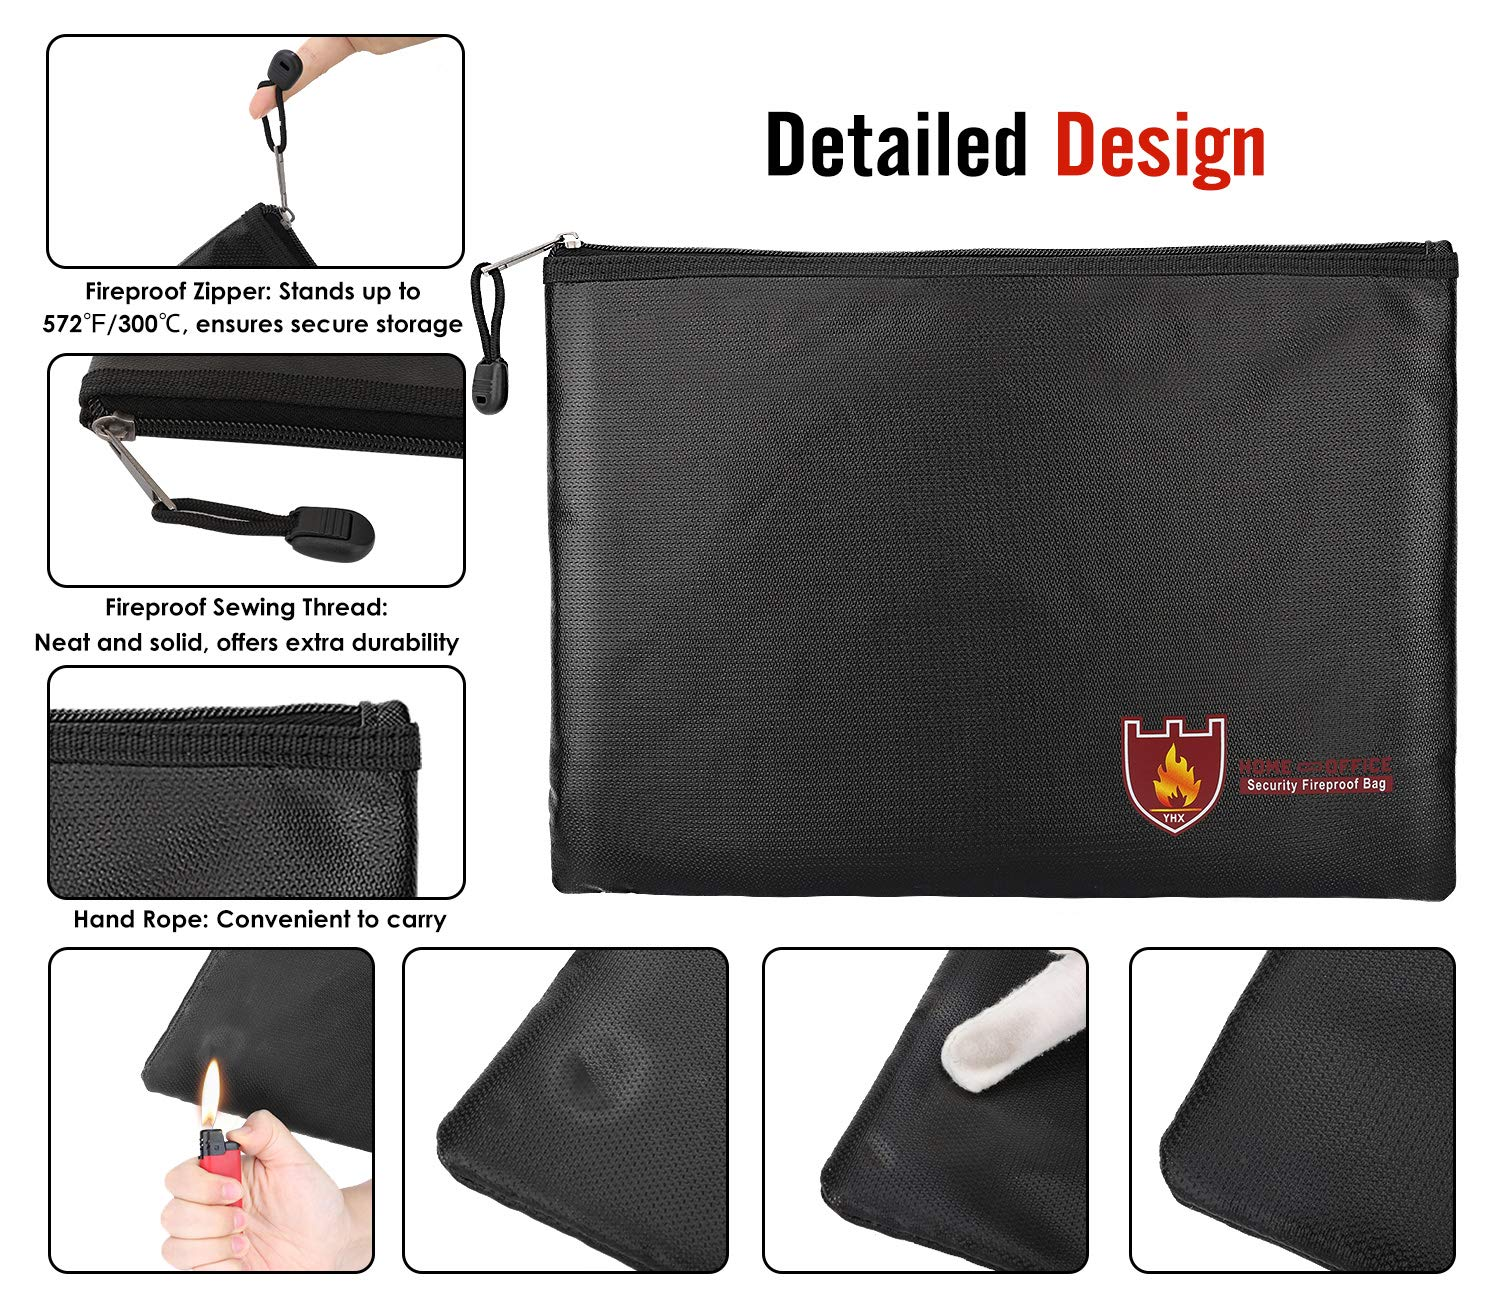 Passport Jewelry Money Black Documents MoKo Fireproof Document Bag A4 Size 13.7/×9.8 Fire /& Water Resistant Envelope File Holder Safe Zipper Cash Pouch for Protecting Valuables